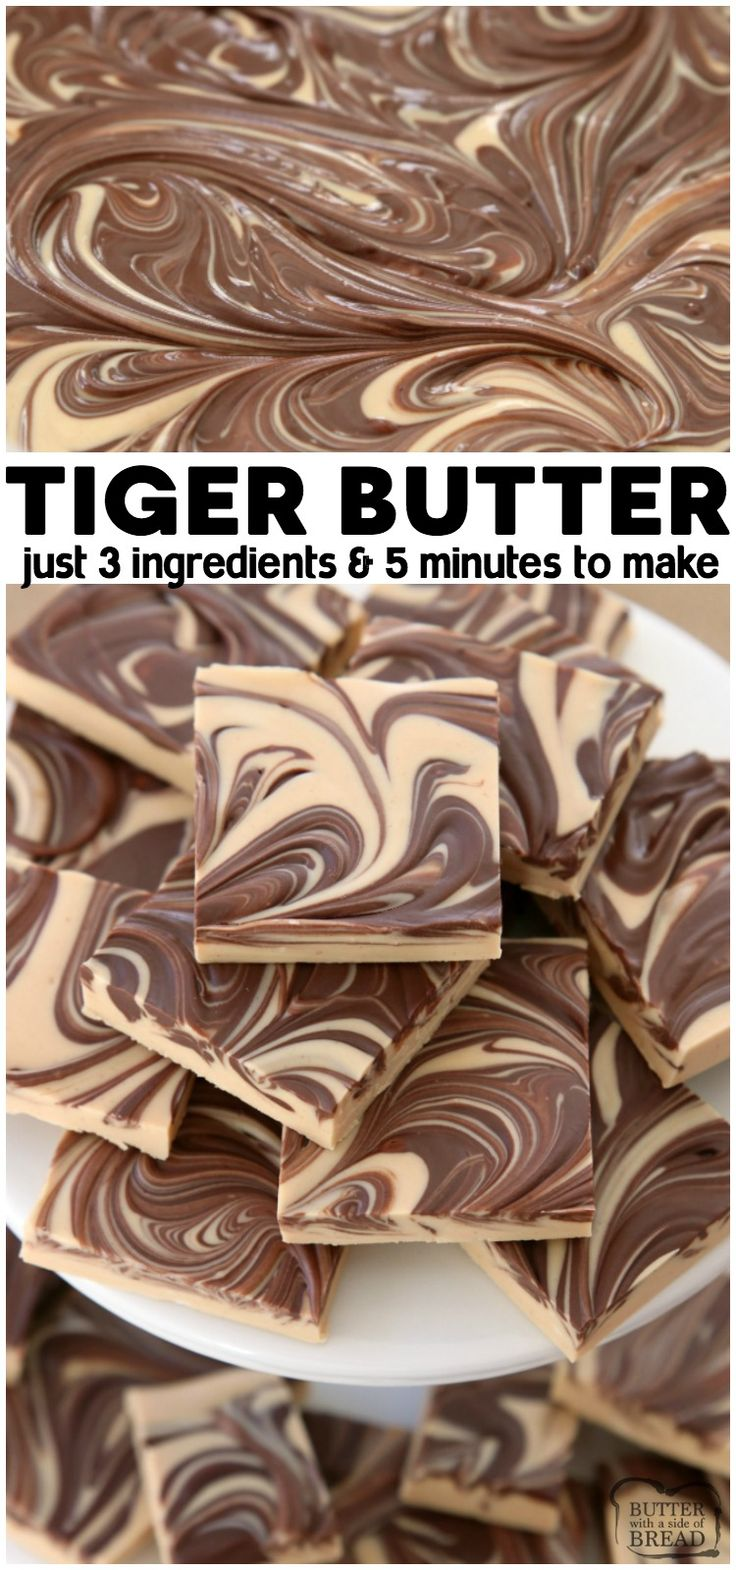 Tiger Butter made from 3 ingredients that are melted & swirled together in minut…